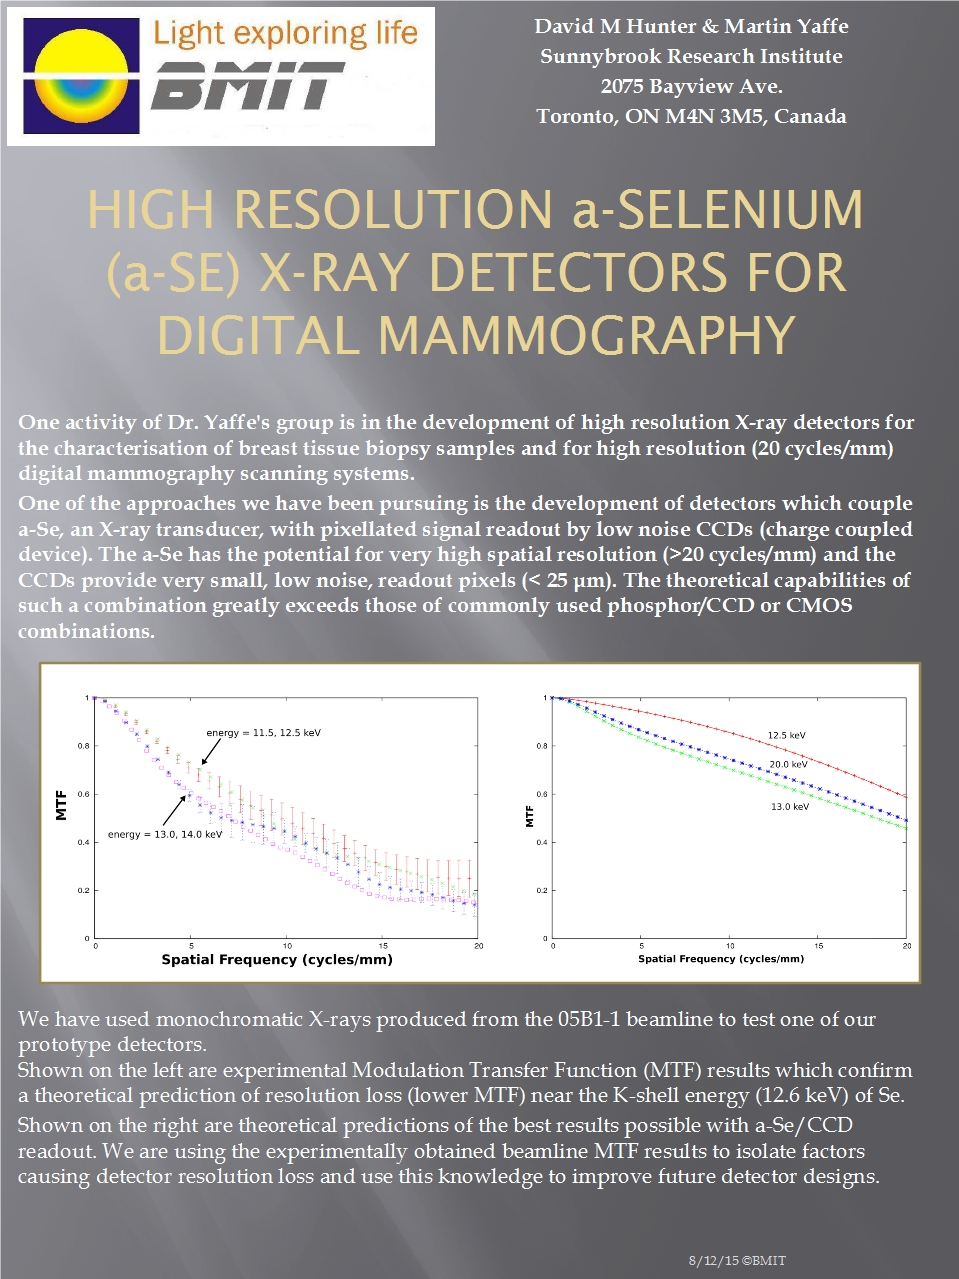 High Resolution a-Selenium (a-Se) X-Ray Detectors for Digital Mammography Image